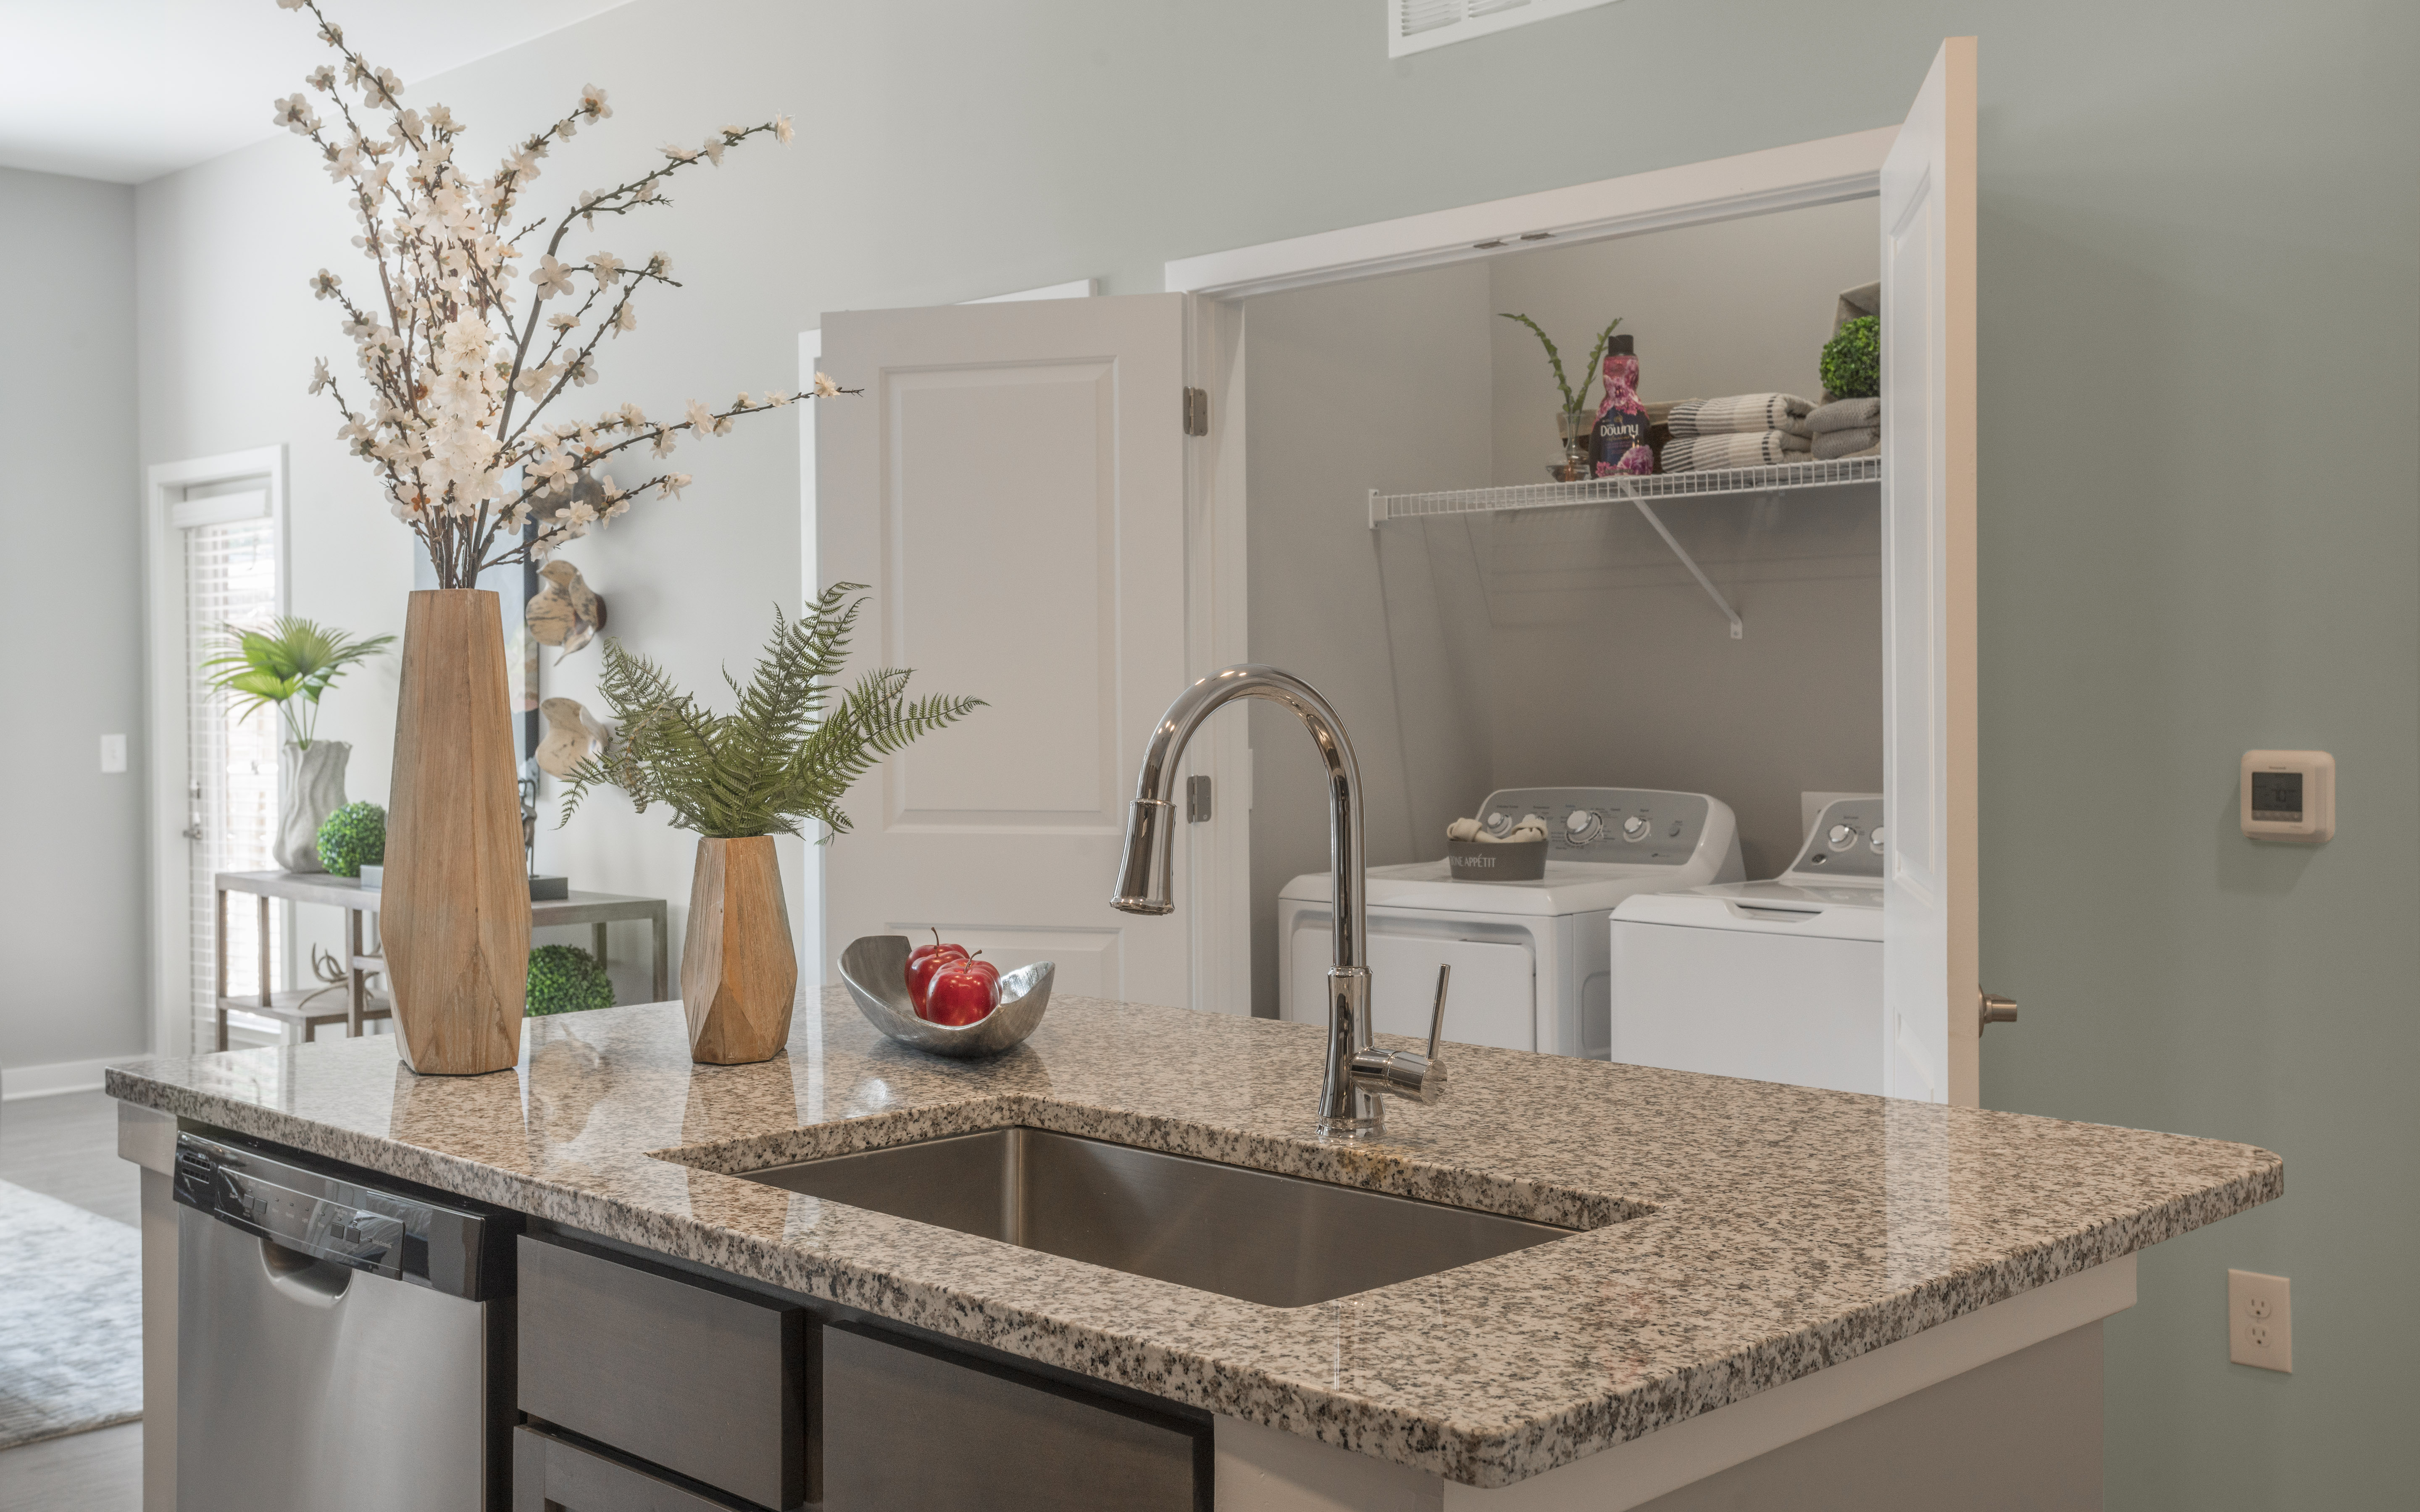 ALTA-CITIZEN-APARTMENTS-NEWPORT-MEWS-WV-MODEL-UNIT-KITCHEN-05